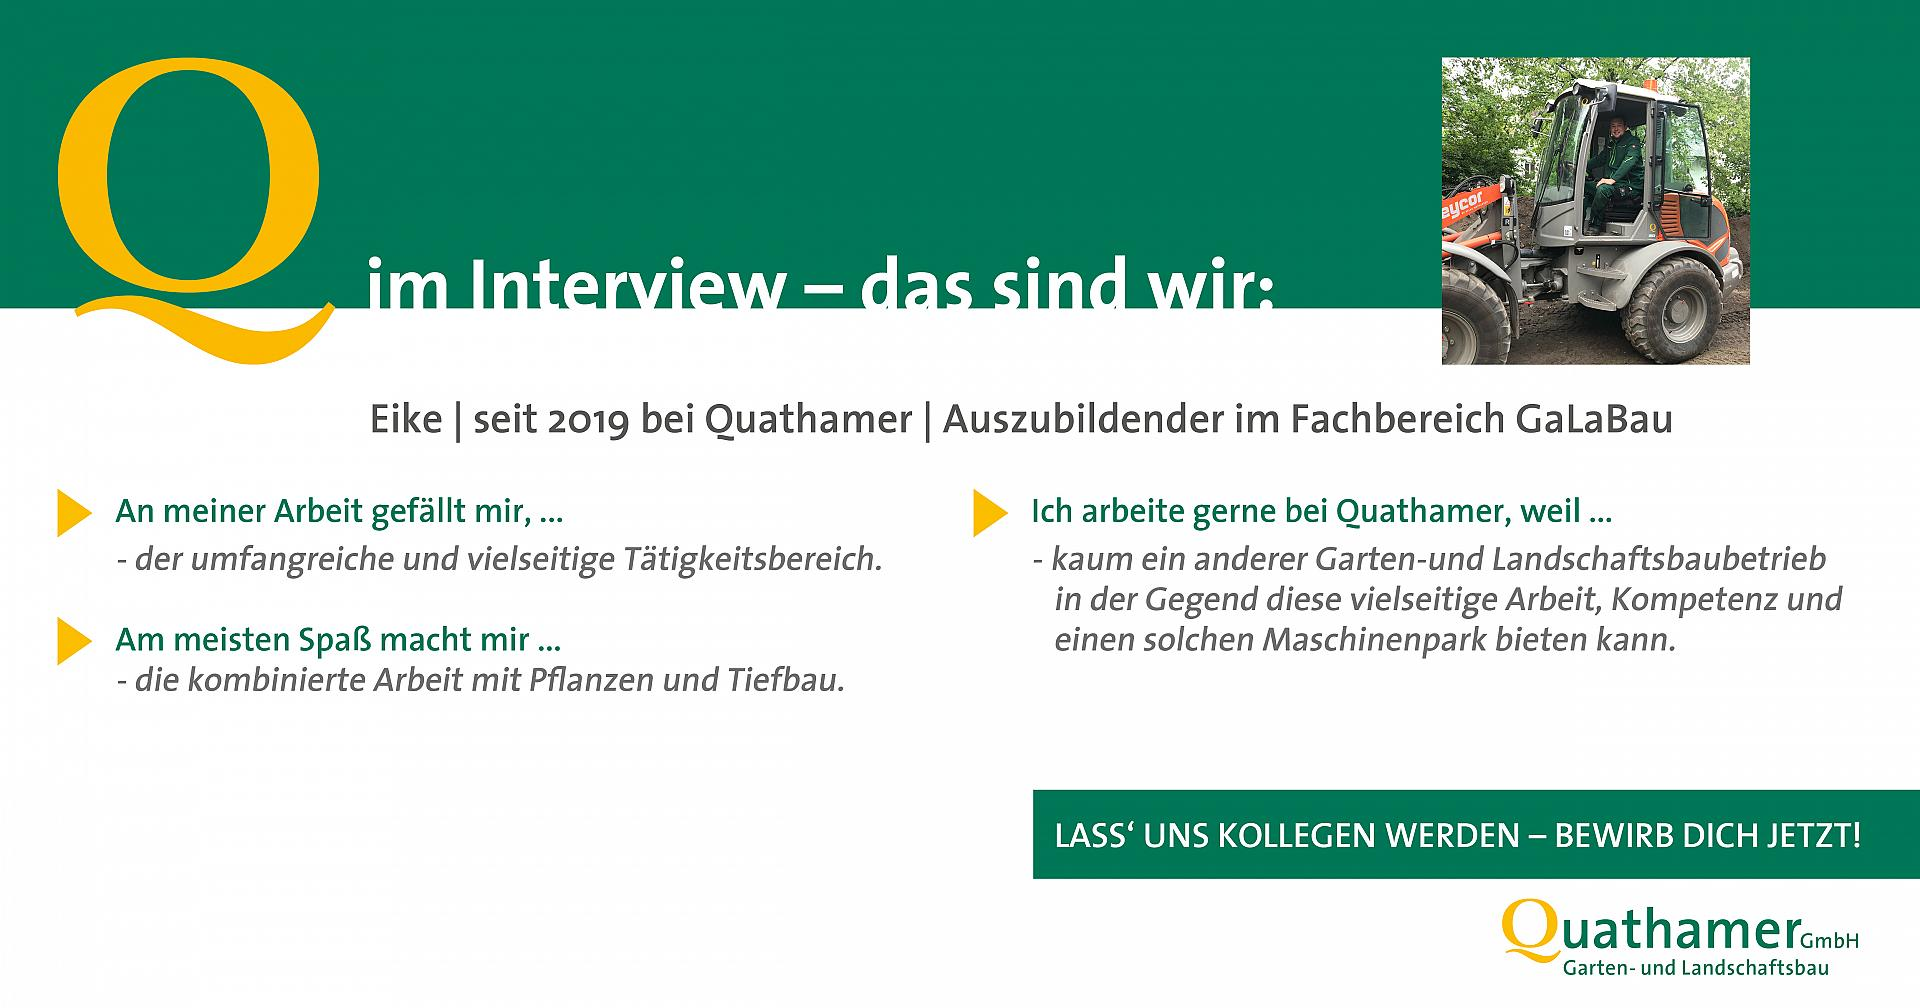 Interview mit Eike